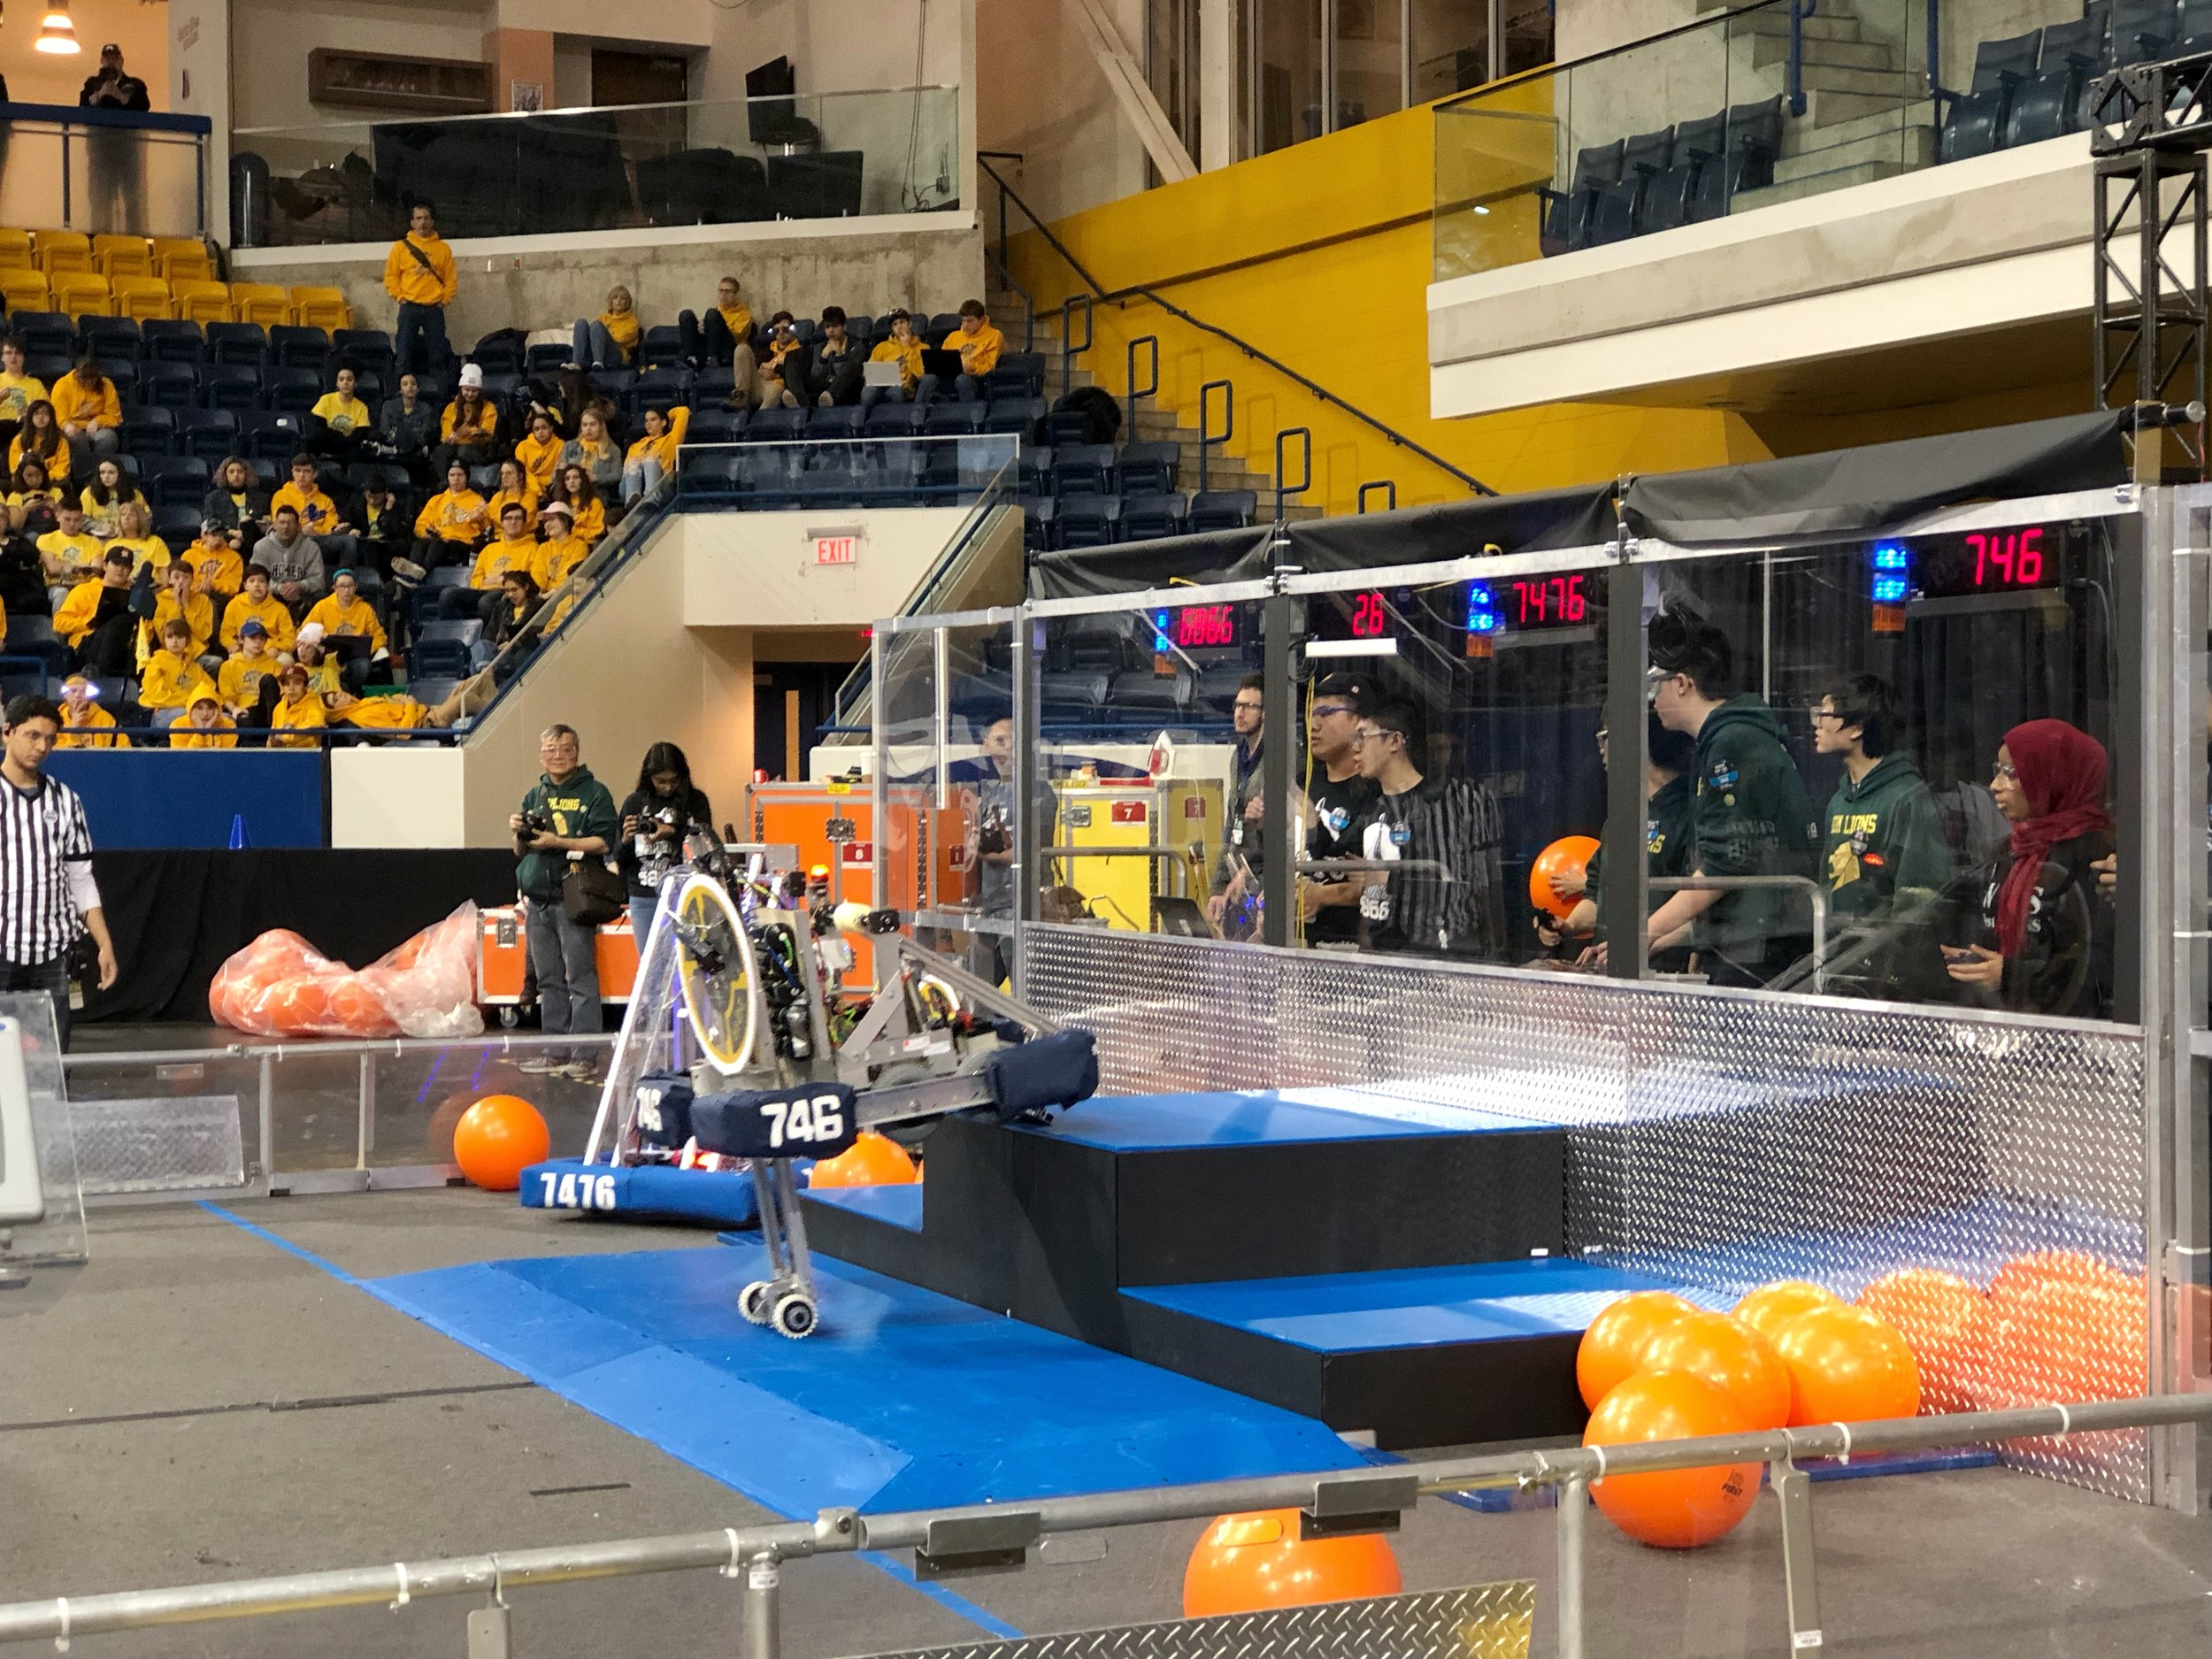 The best feature of Team 746's robot: the hydraulic lift